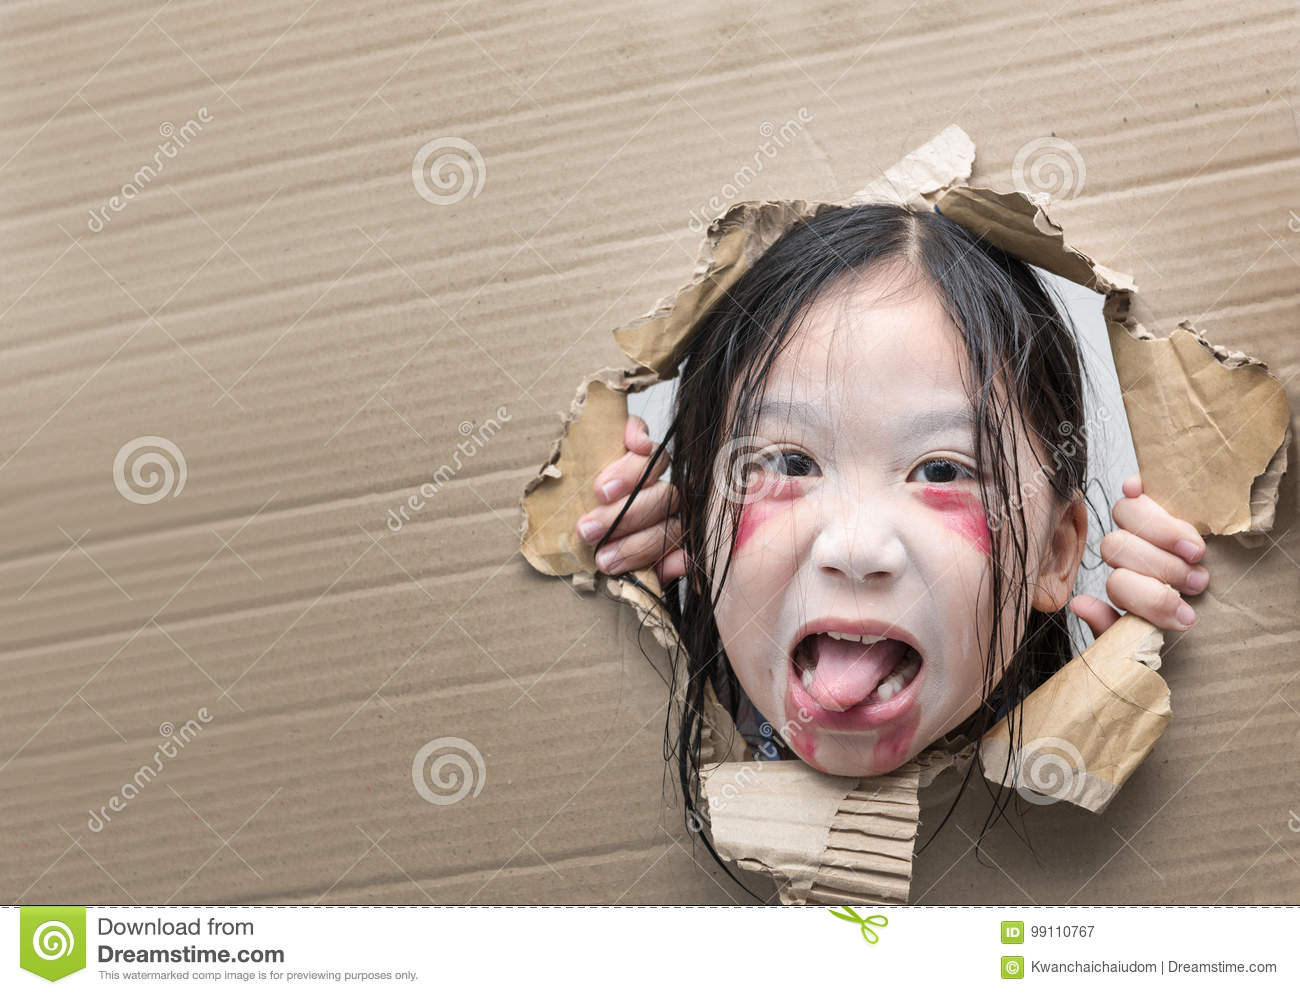 download ghost kid looking through hole on cardboard stock image image of face